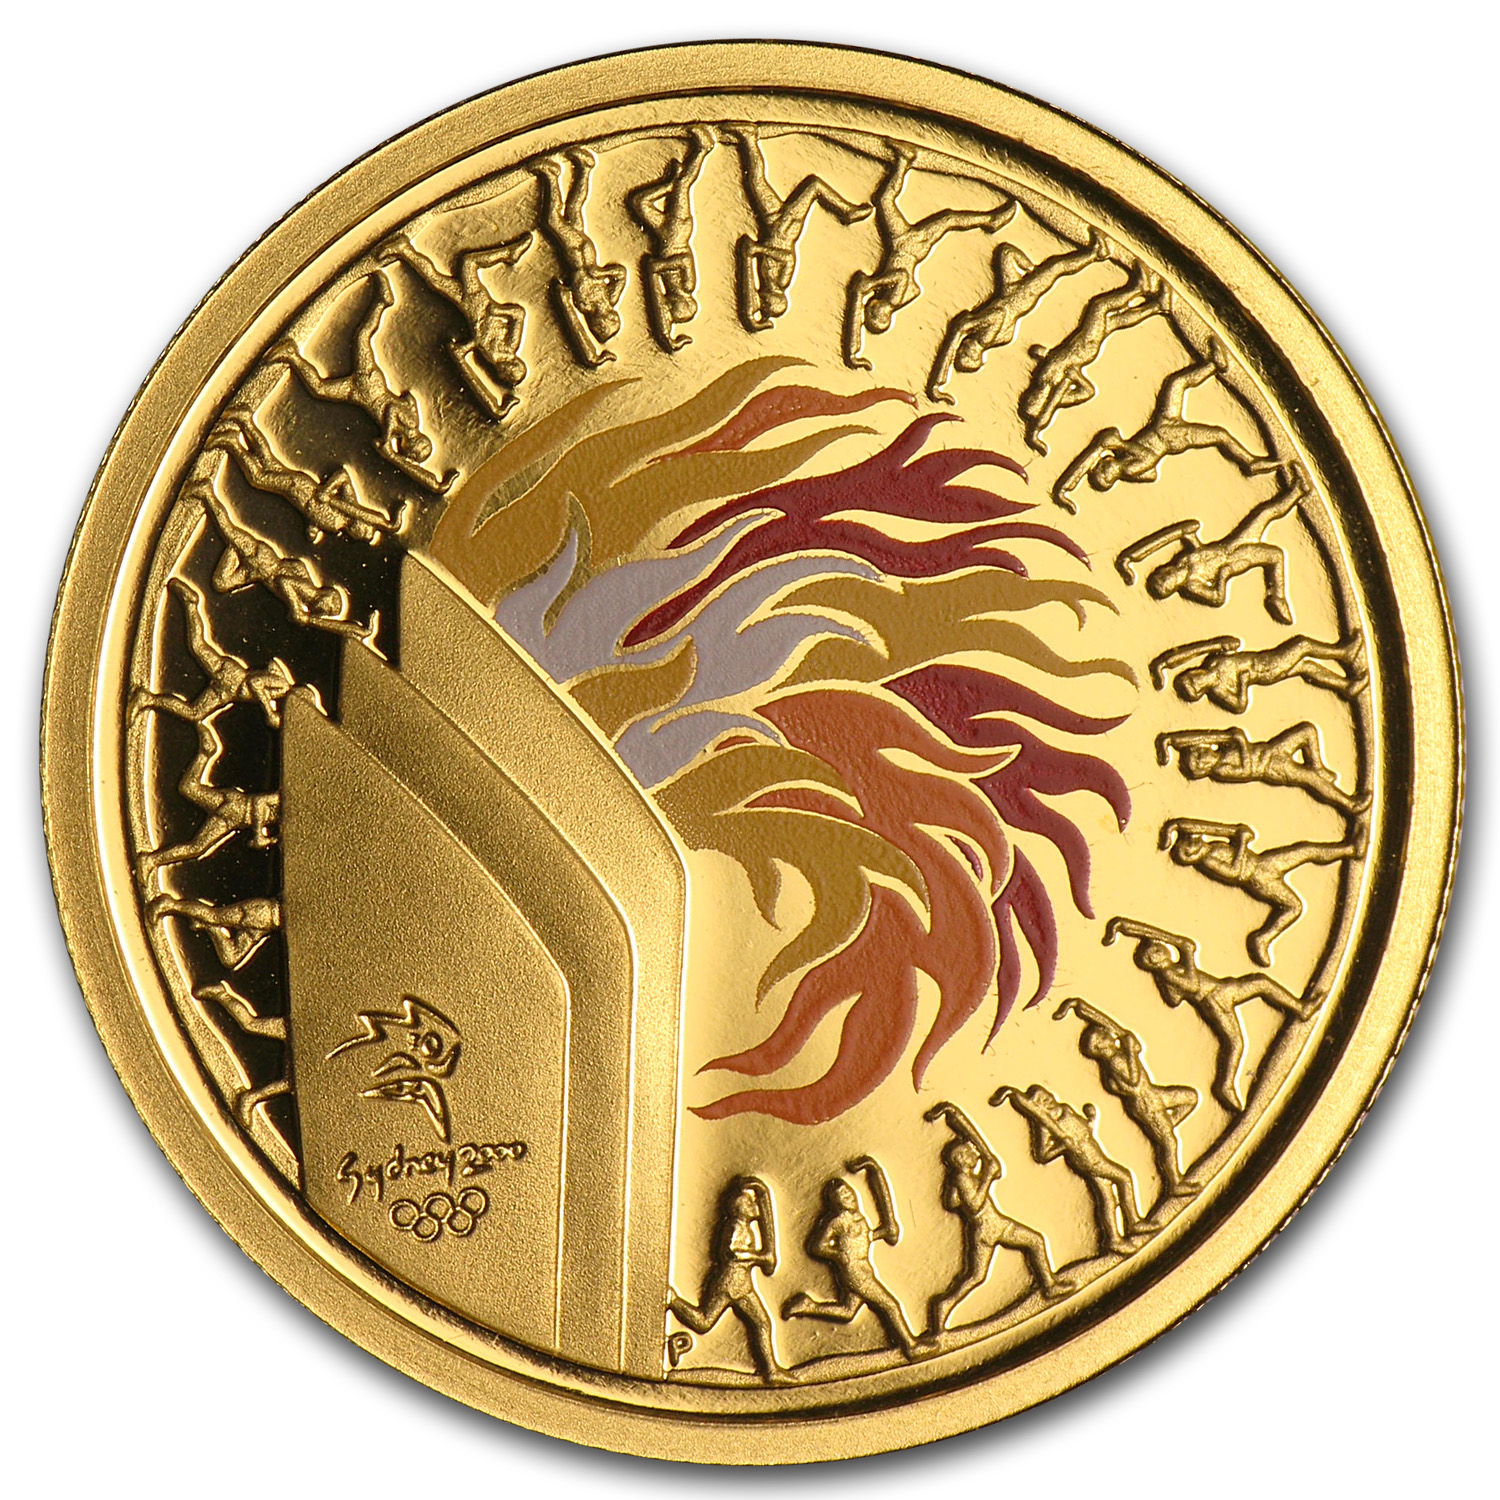 2000 $100 Proof Gold Sydney Olympics Torch Coin (In Capsule)